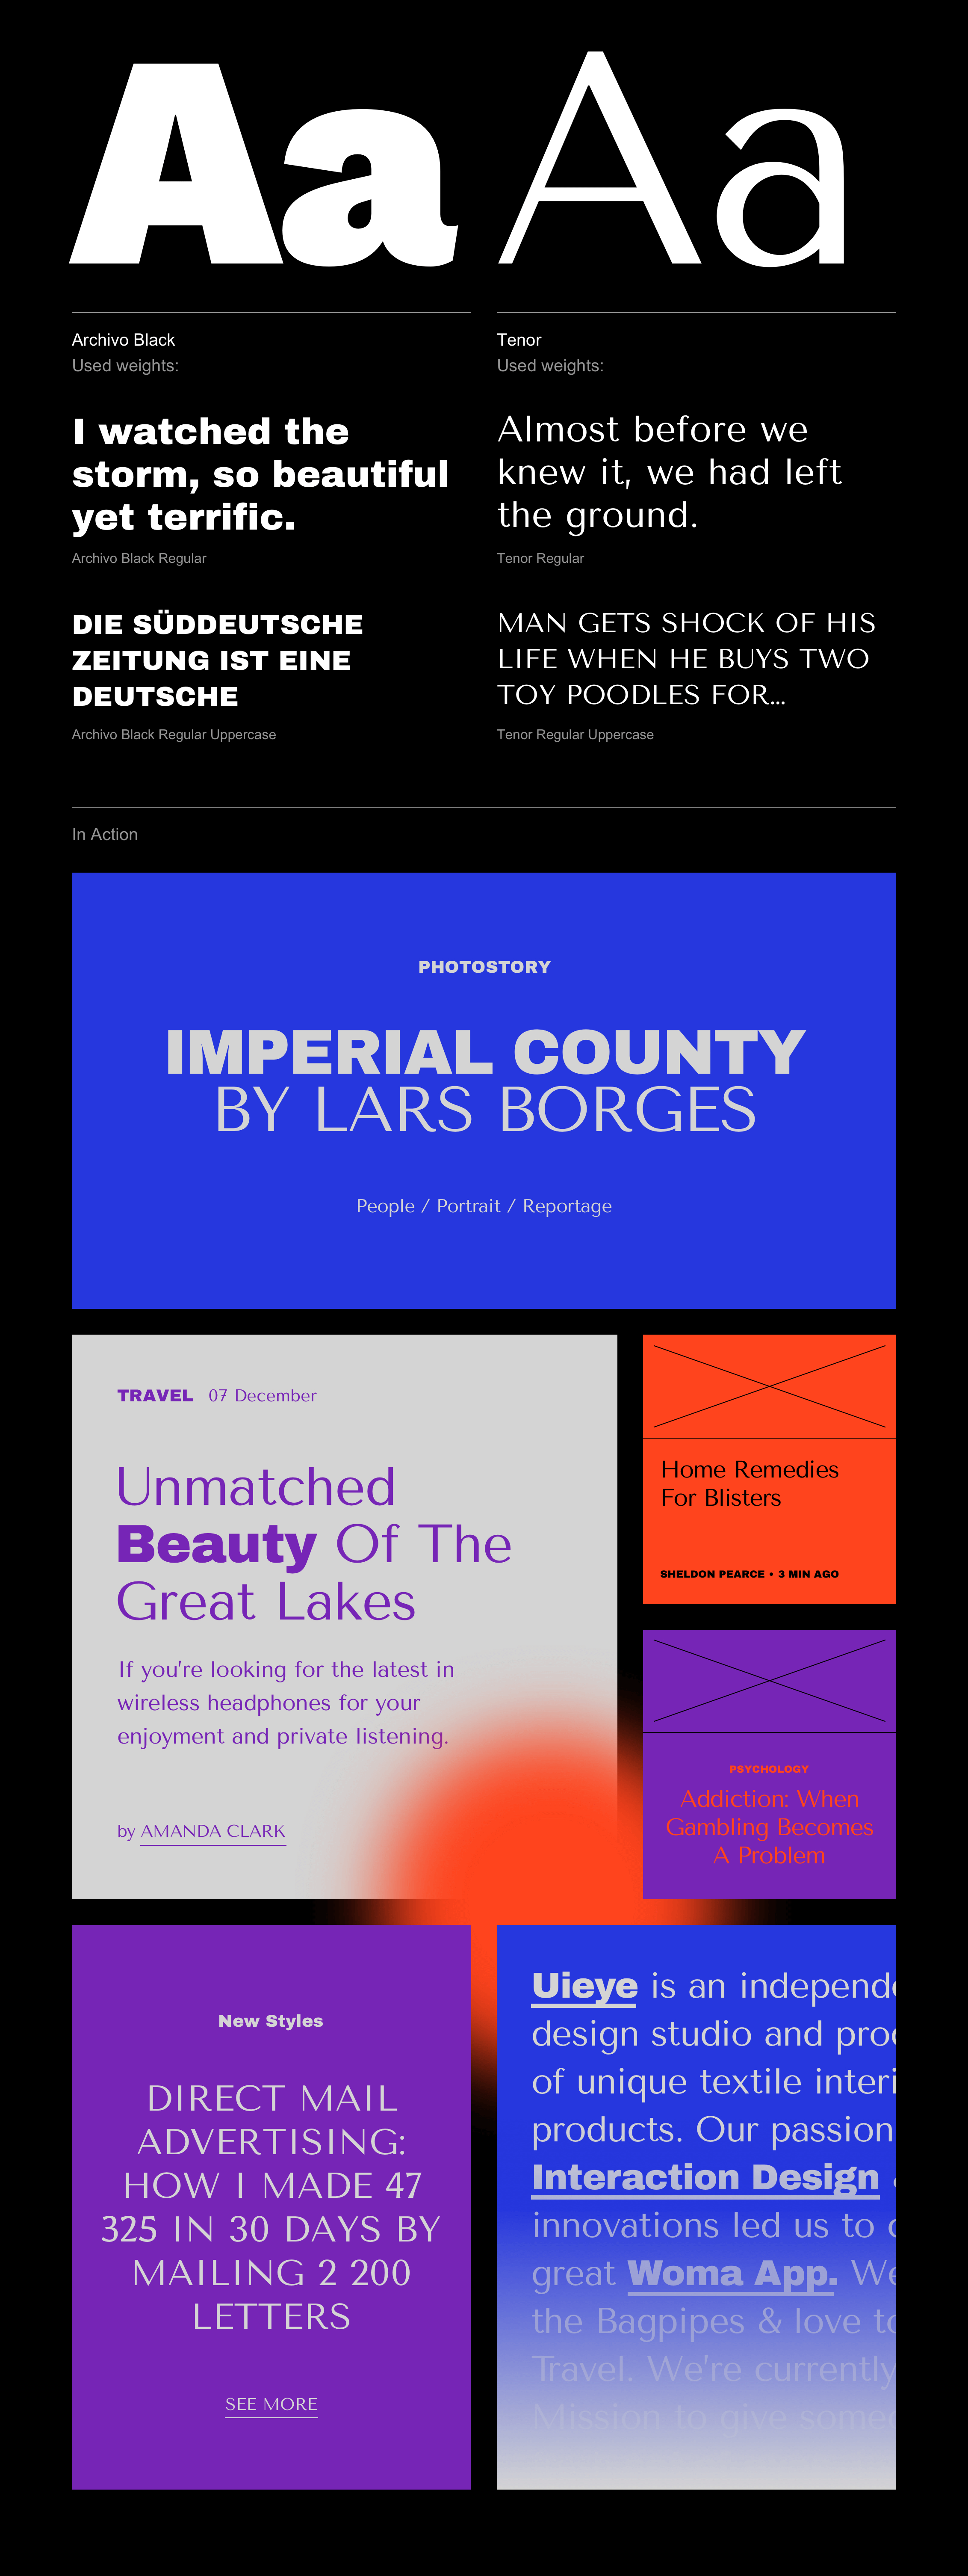 5 Trendy Google Font Combinations For Your Next Design